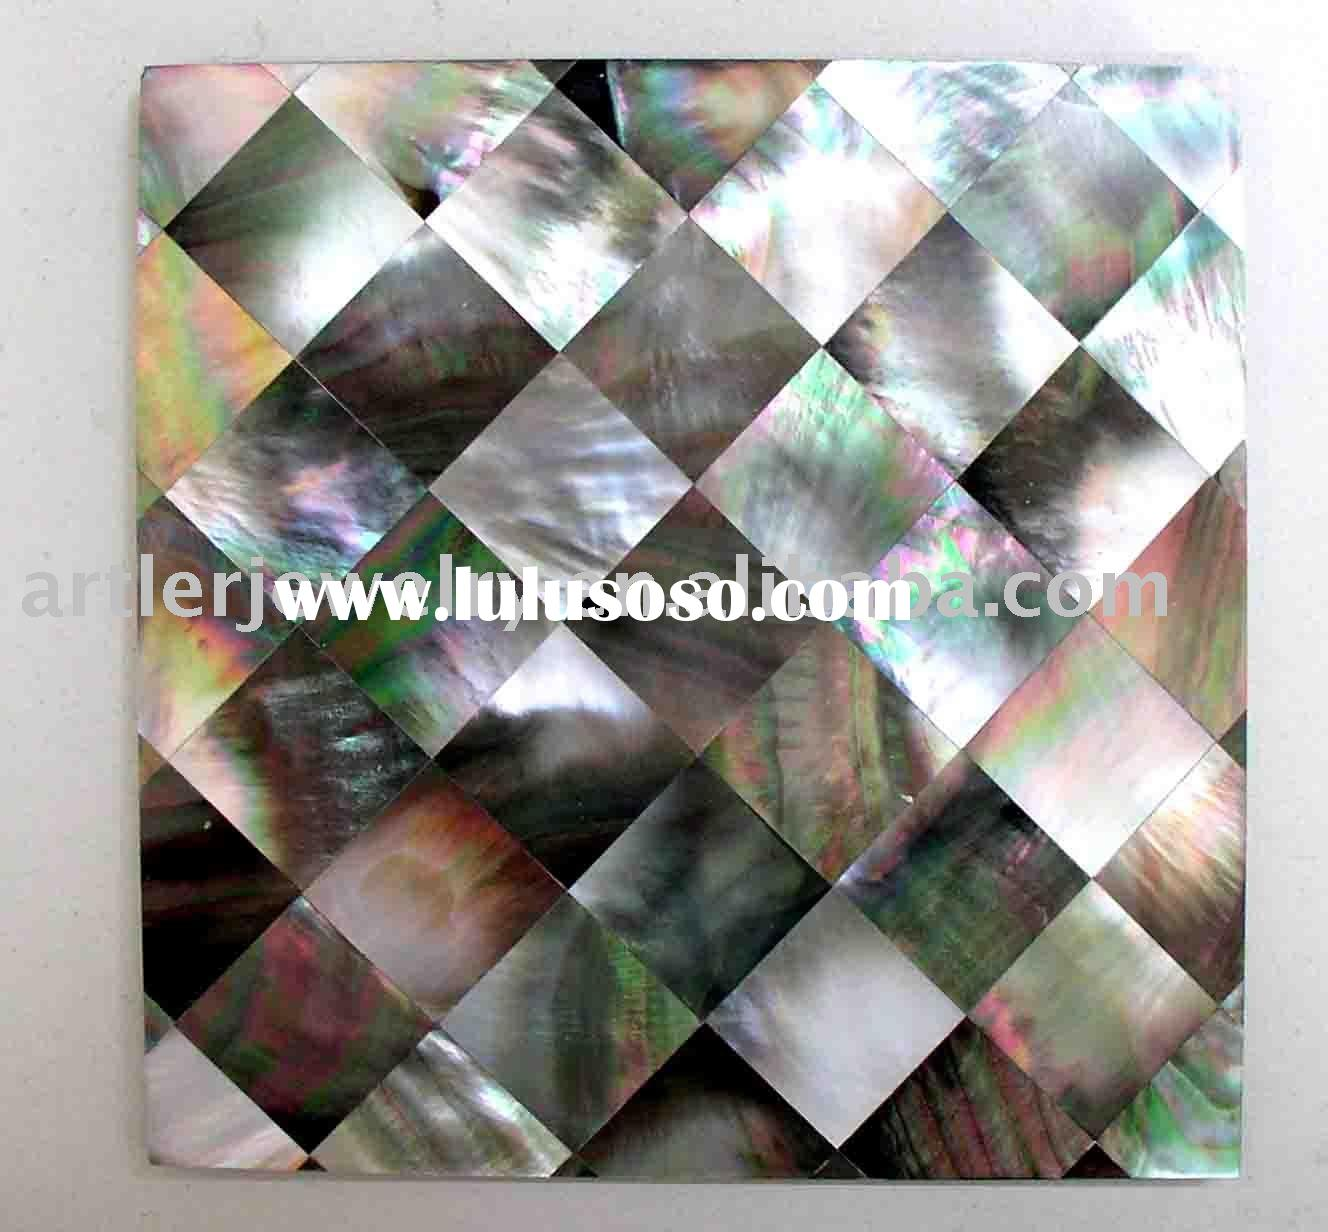 Mother of pearl tile, mop tile, mop mosaic